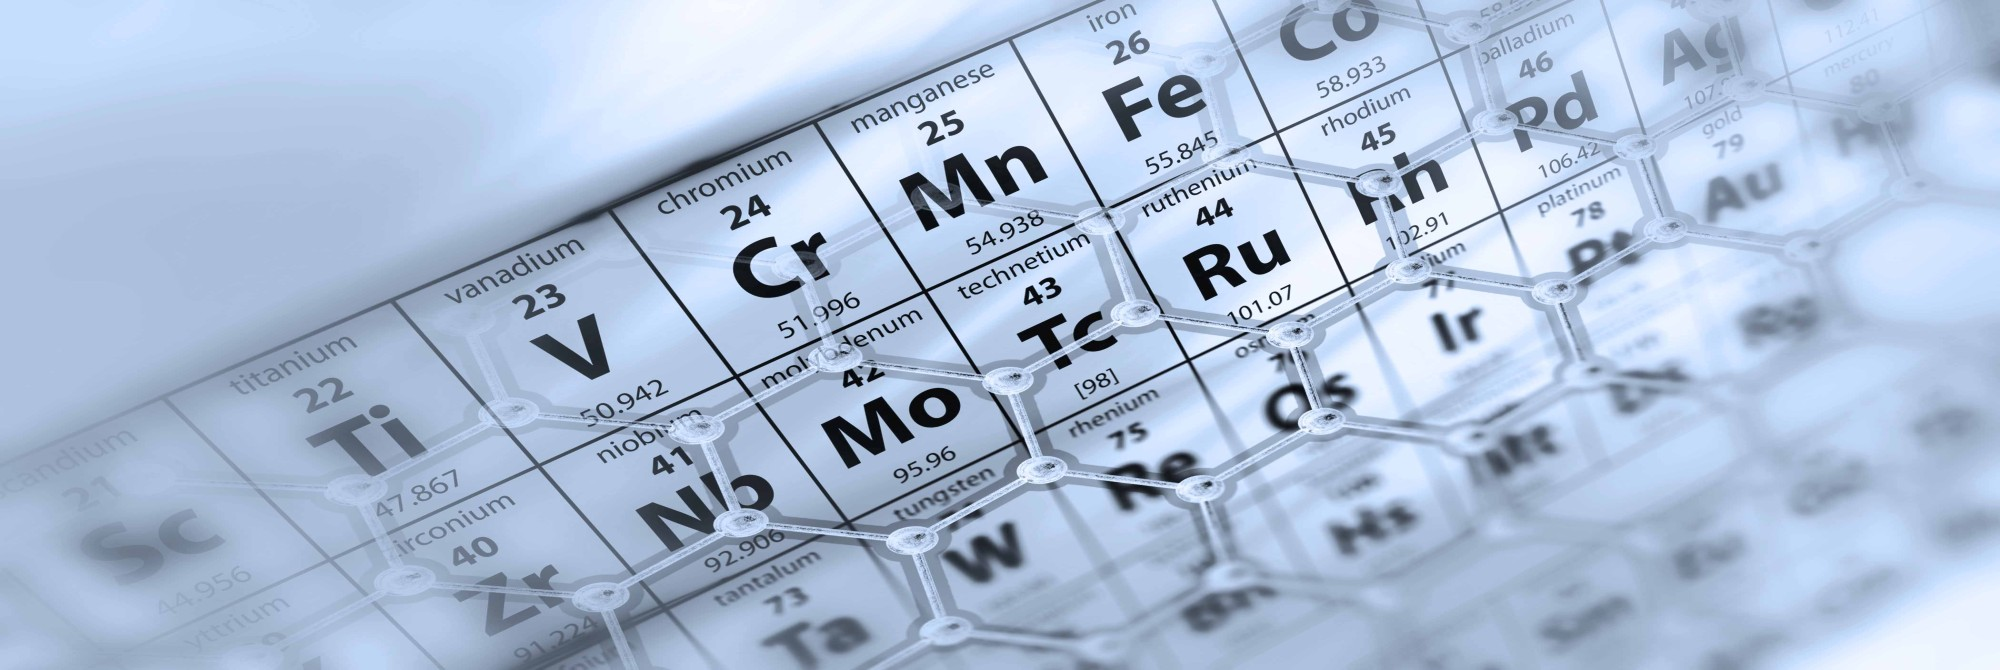 Chemical compositions of stainless steel